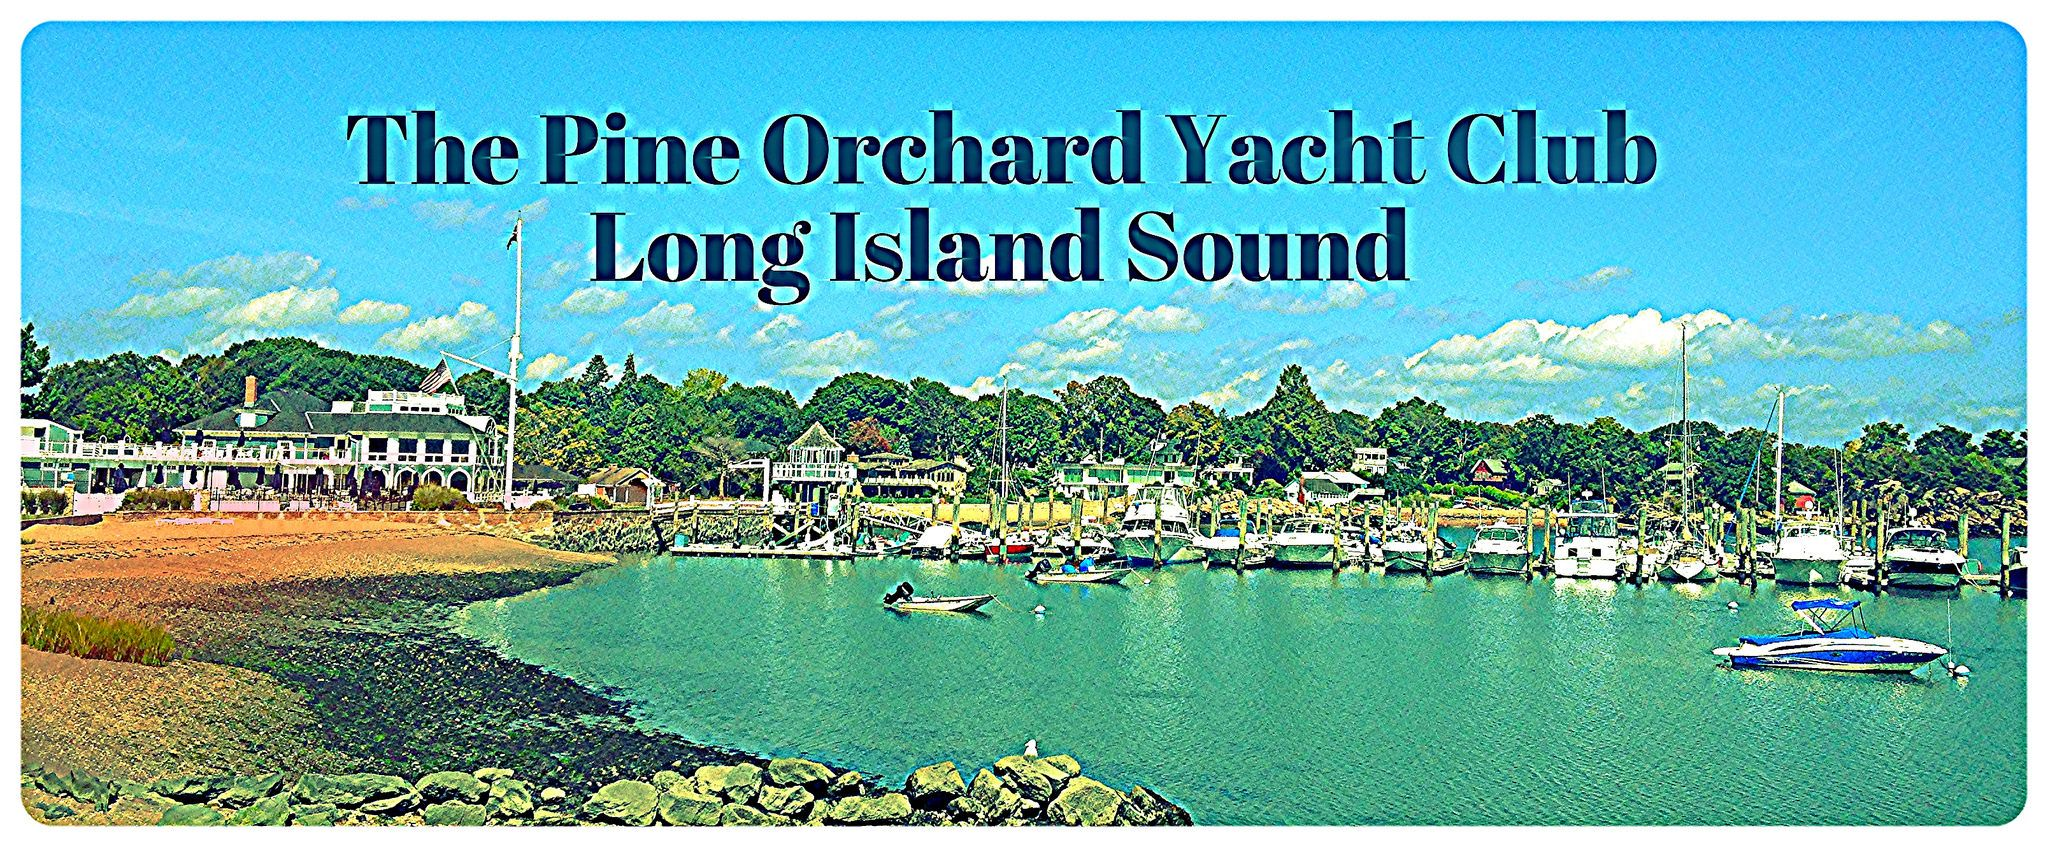 https://flic.kr/p/y9bhJs | Luigi Speranza -- The Pine Orchard Yacht Club, Long Island Sound.